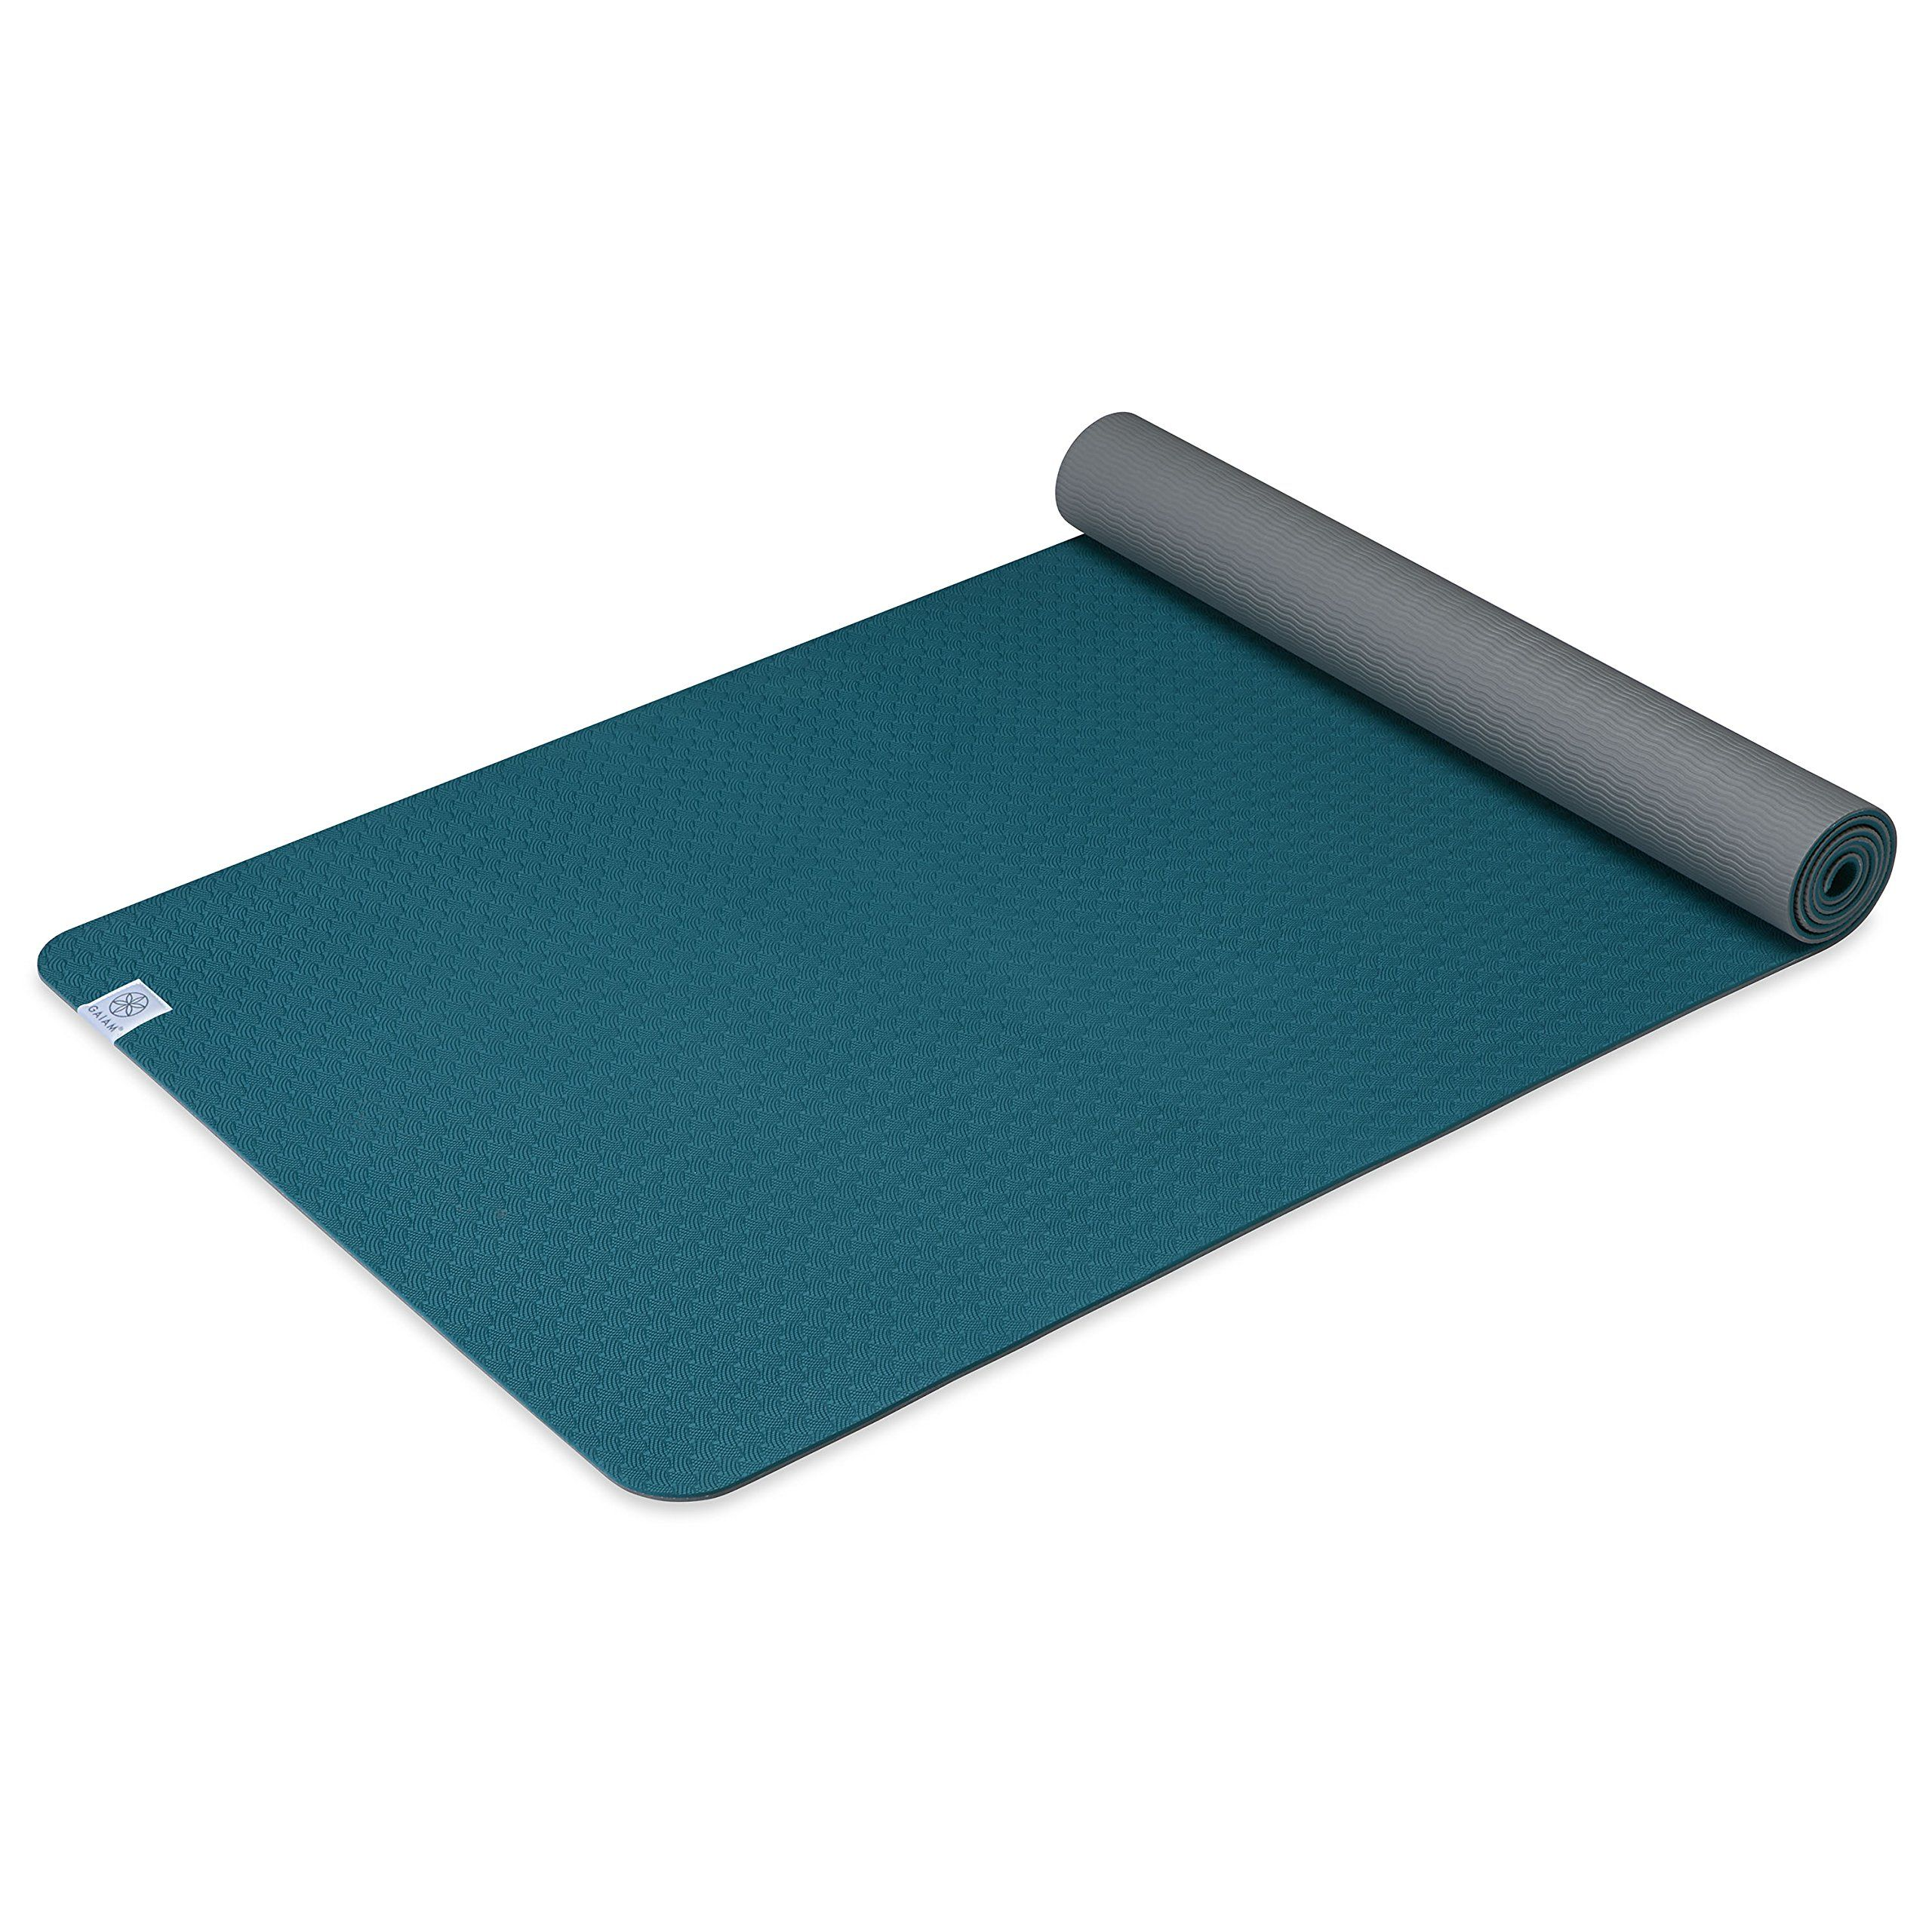 Gaiam Performance Tpe Yoga Mat Lake Discover Even More Regarding The Wonderful Item At The Photo Link This Is With Images Gaiam Yoga Mat Floor Workouts Mat Exercises